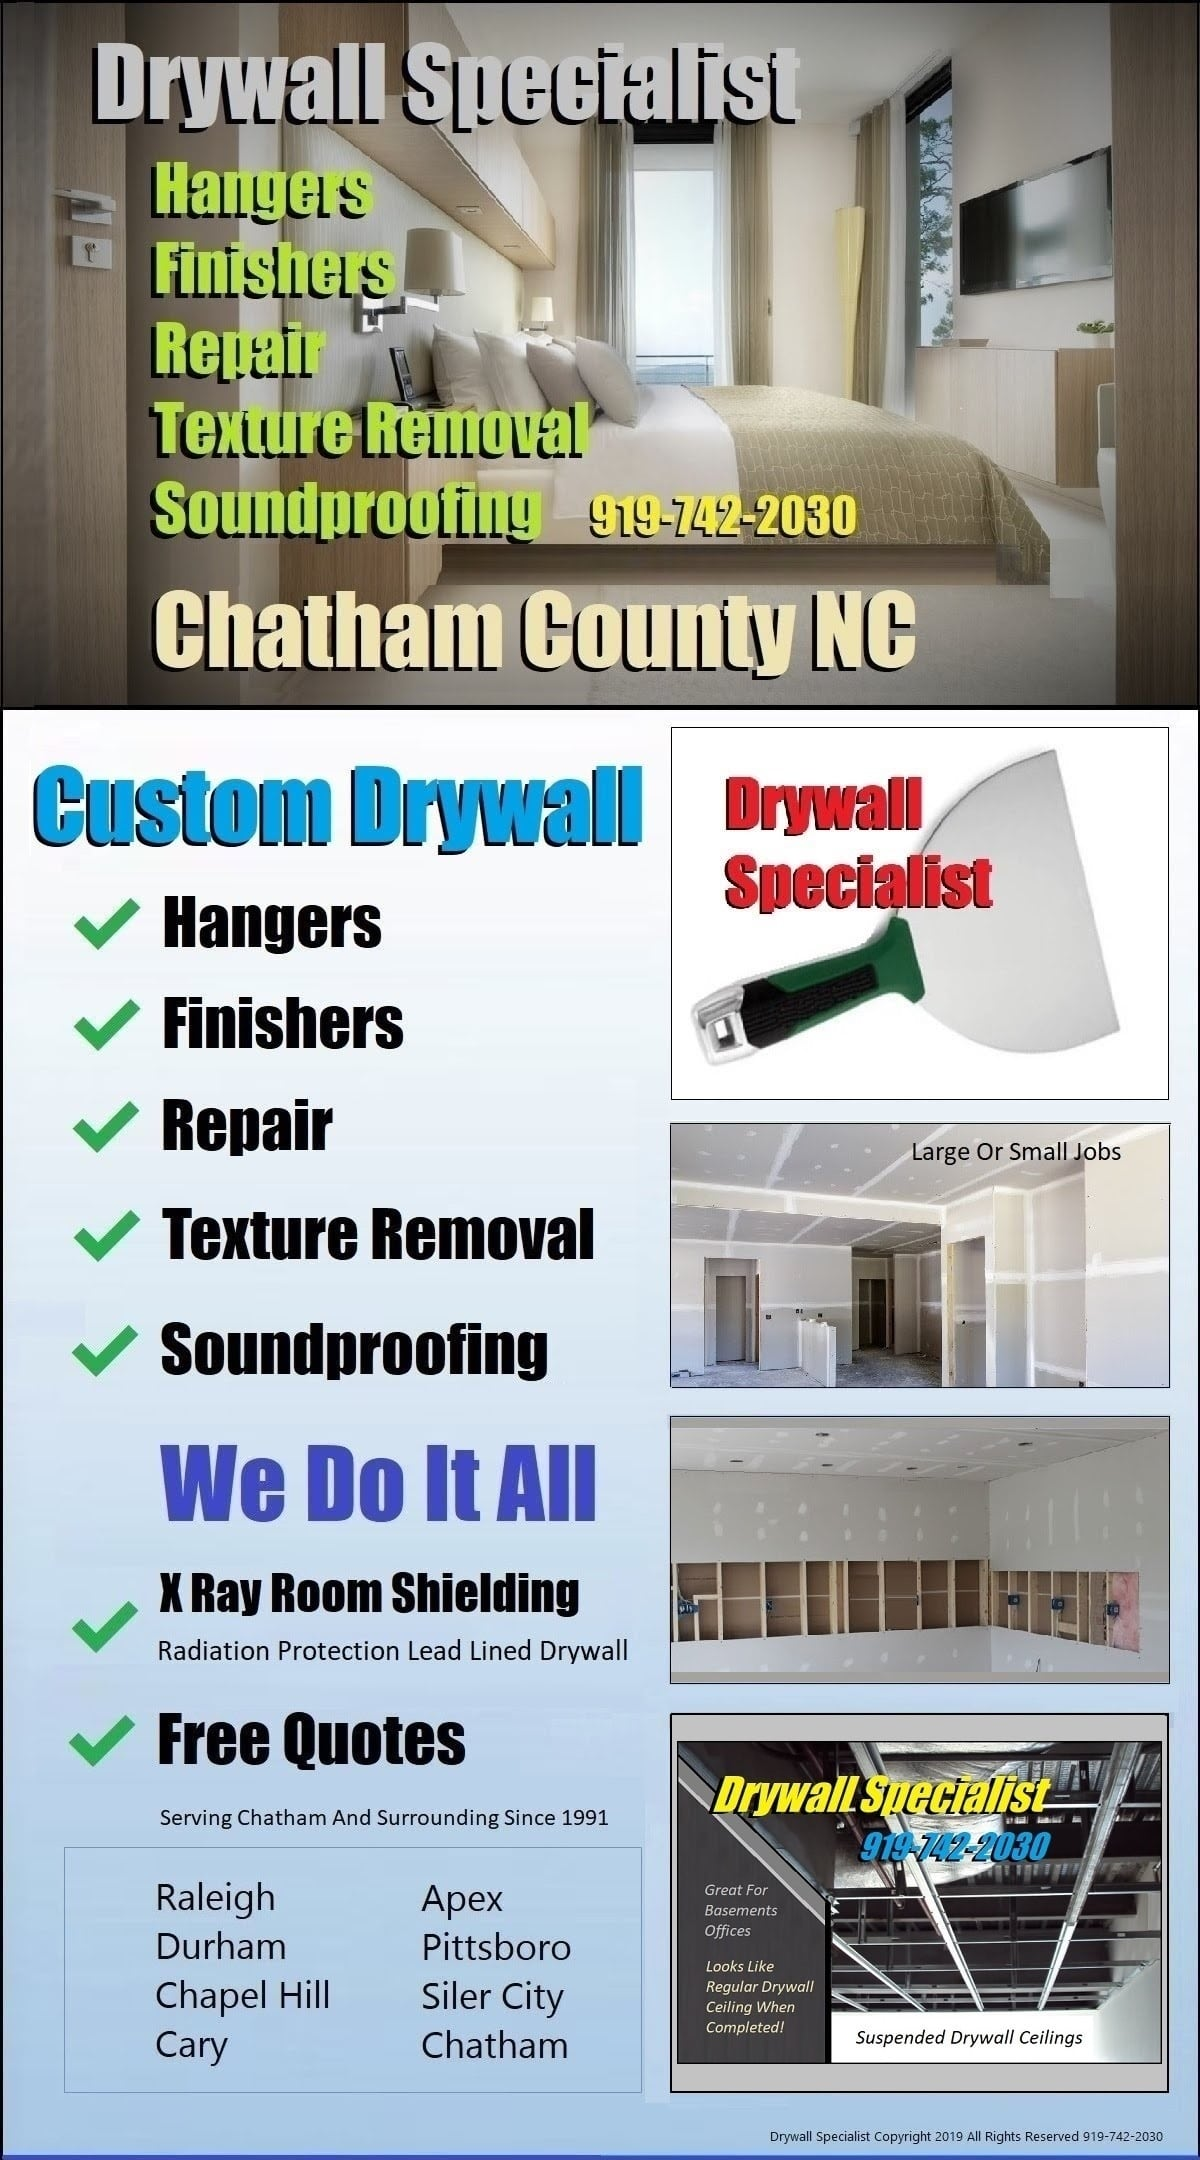 Nextdoor Greensboro Wallboard Taping Bedding Mudding Contractor | North Carolina